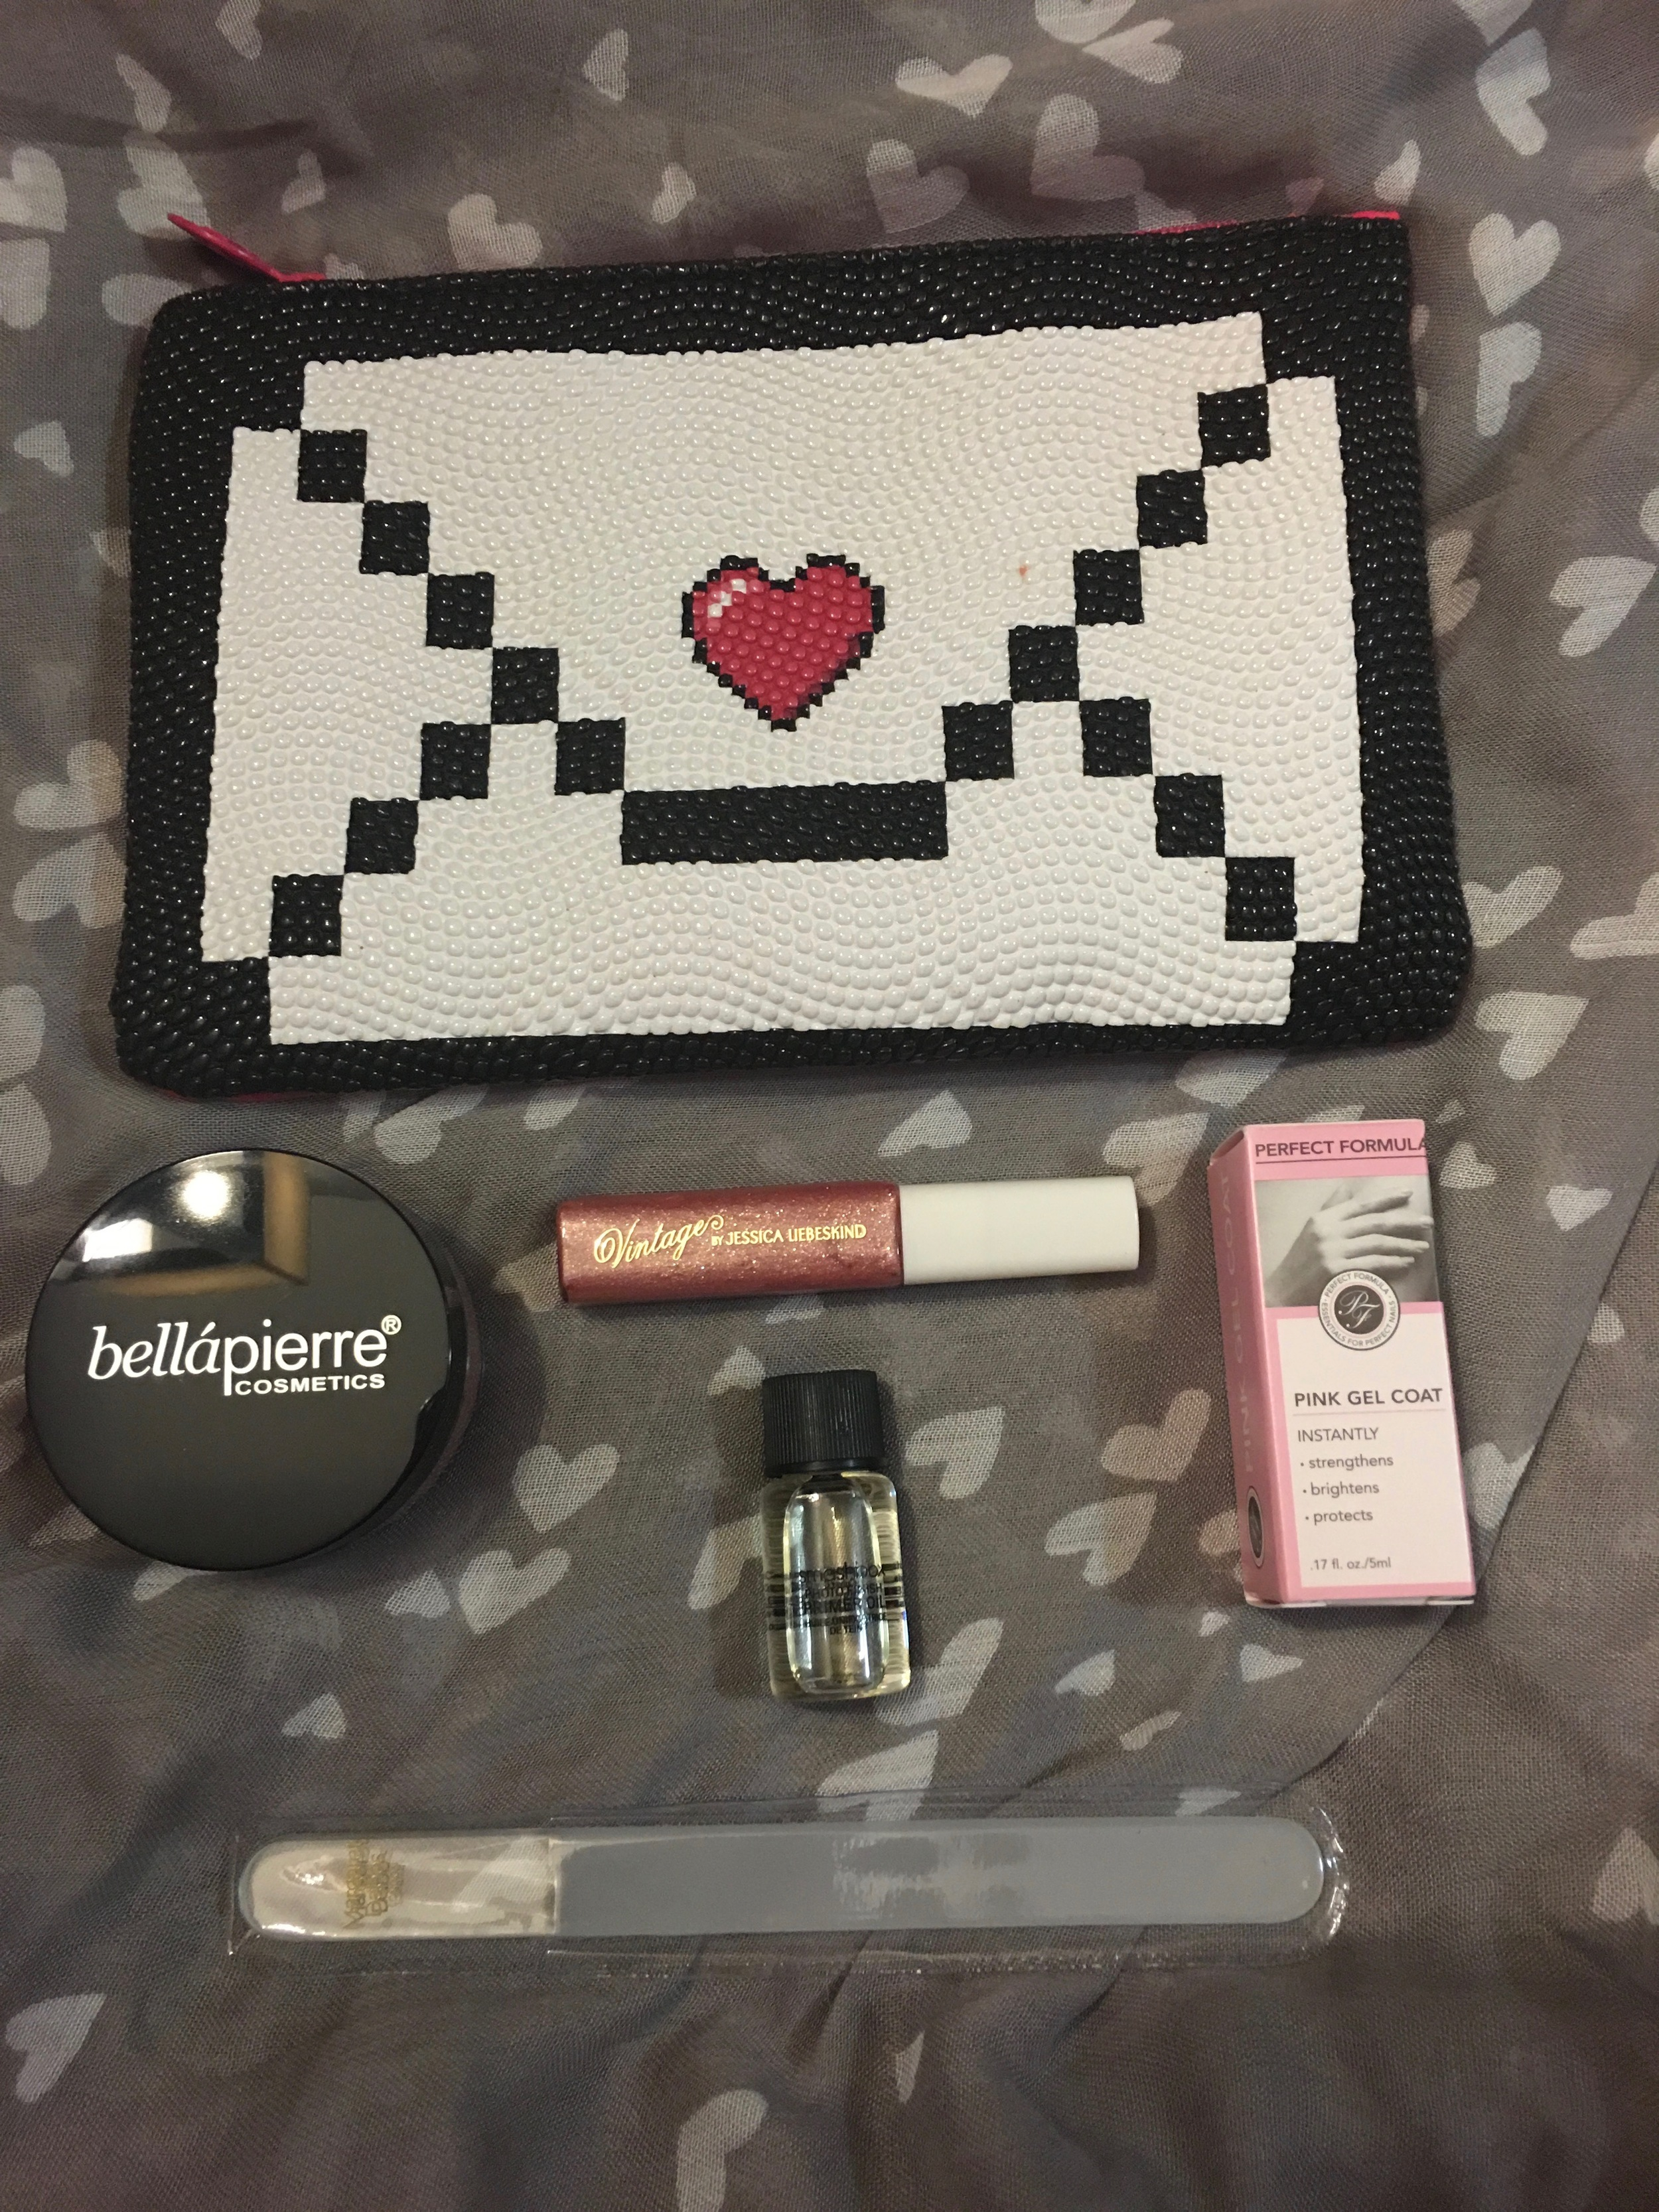 All of the ipsy goodies.  I promise you don't need to see the color of the blush. It will only disappoint you.